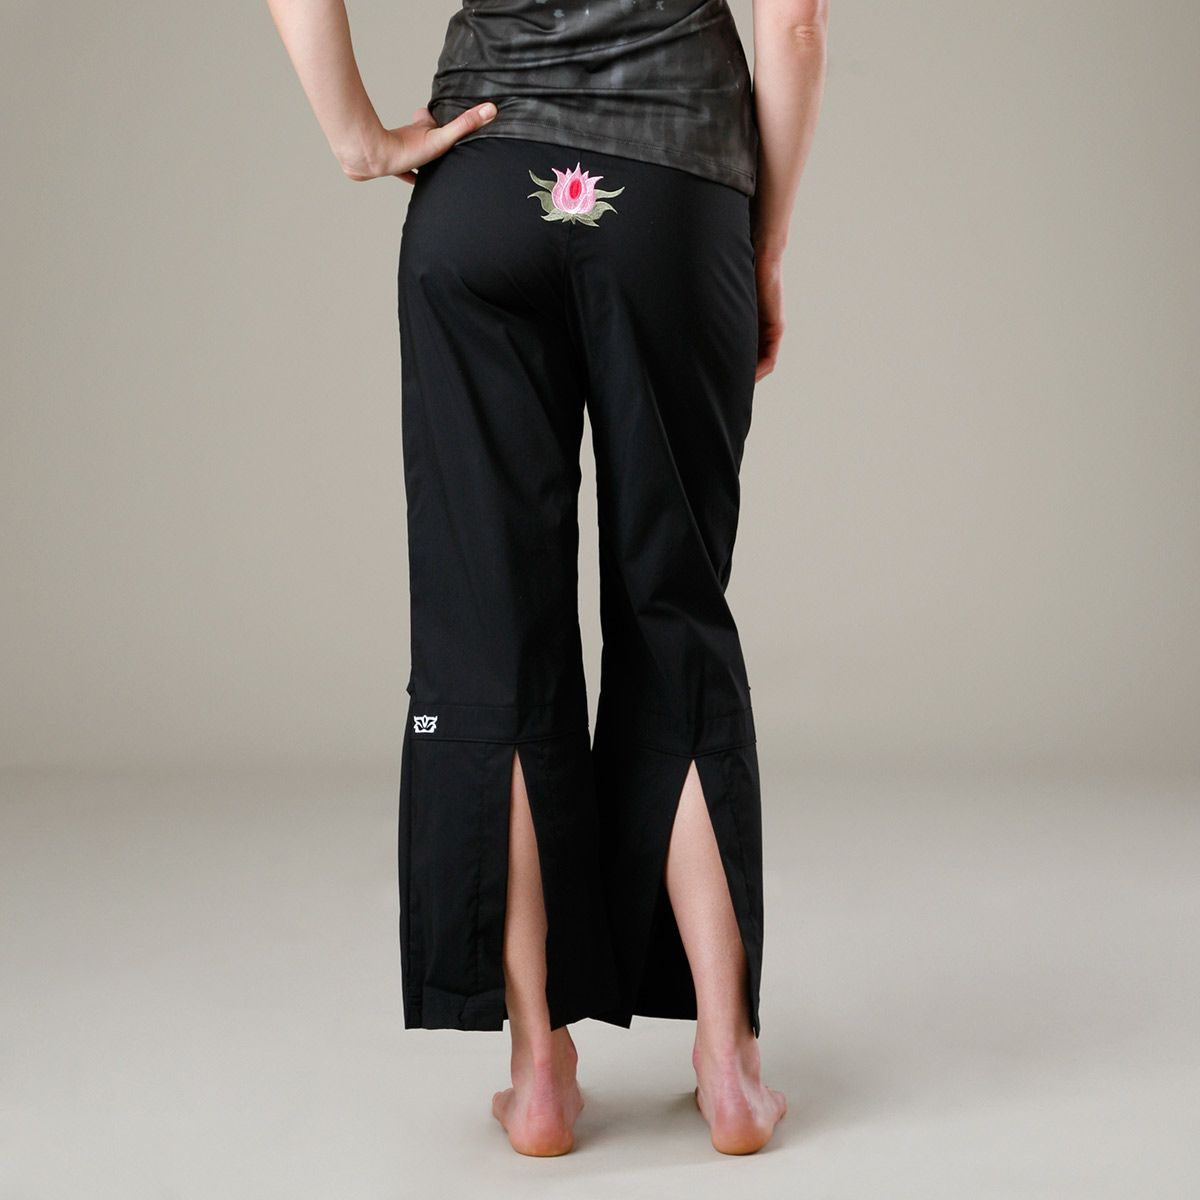 8c19133985 Be Present Lotus Agility Pant | style | Pants for women, Clothes for ...